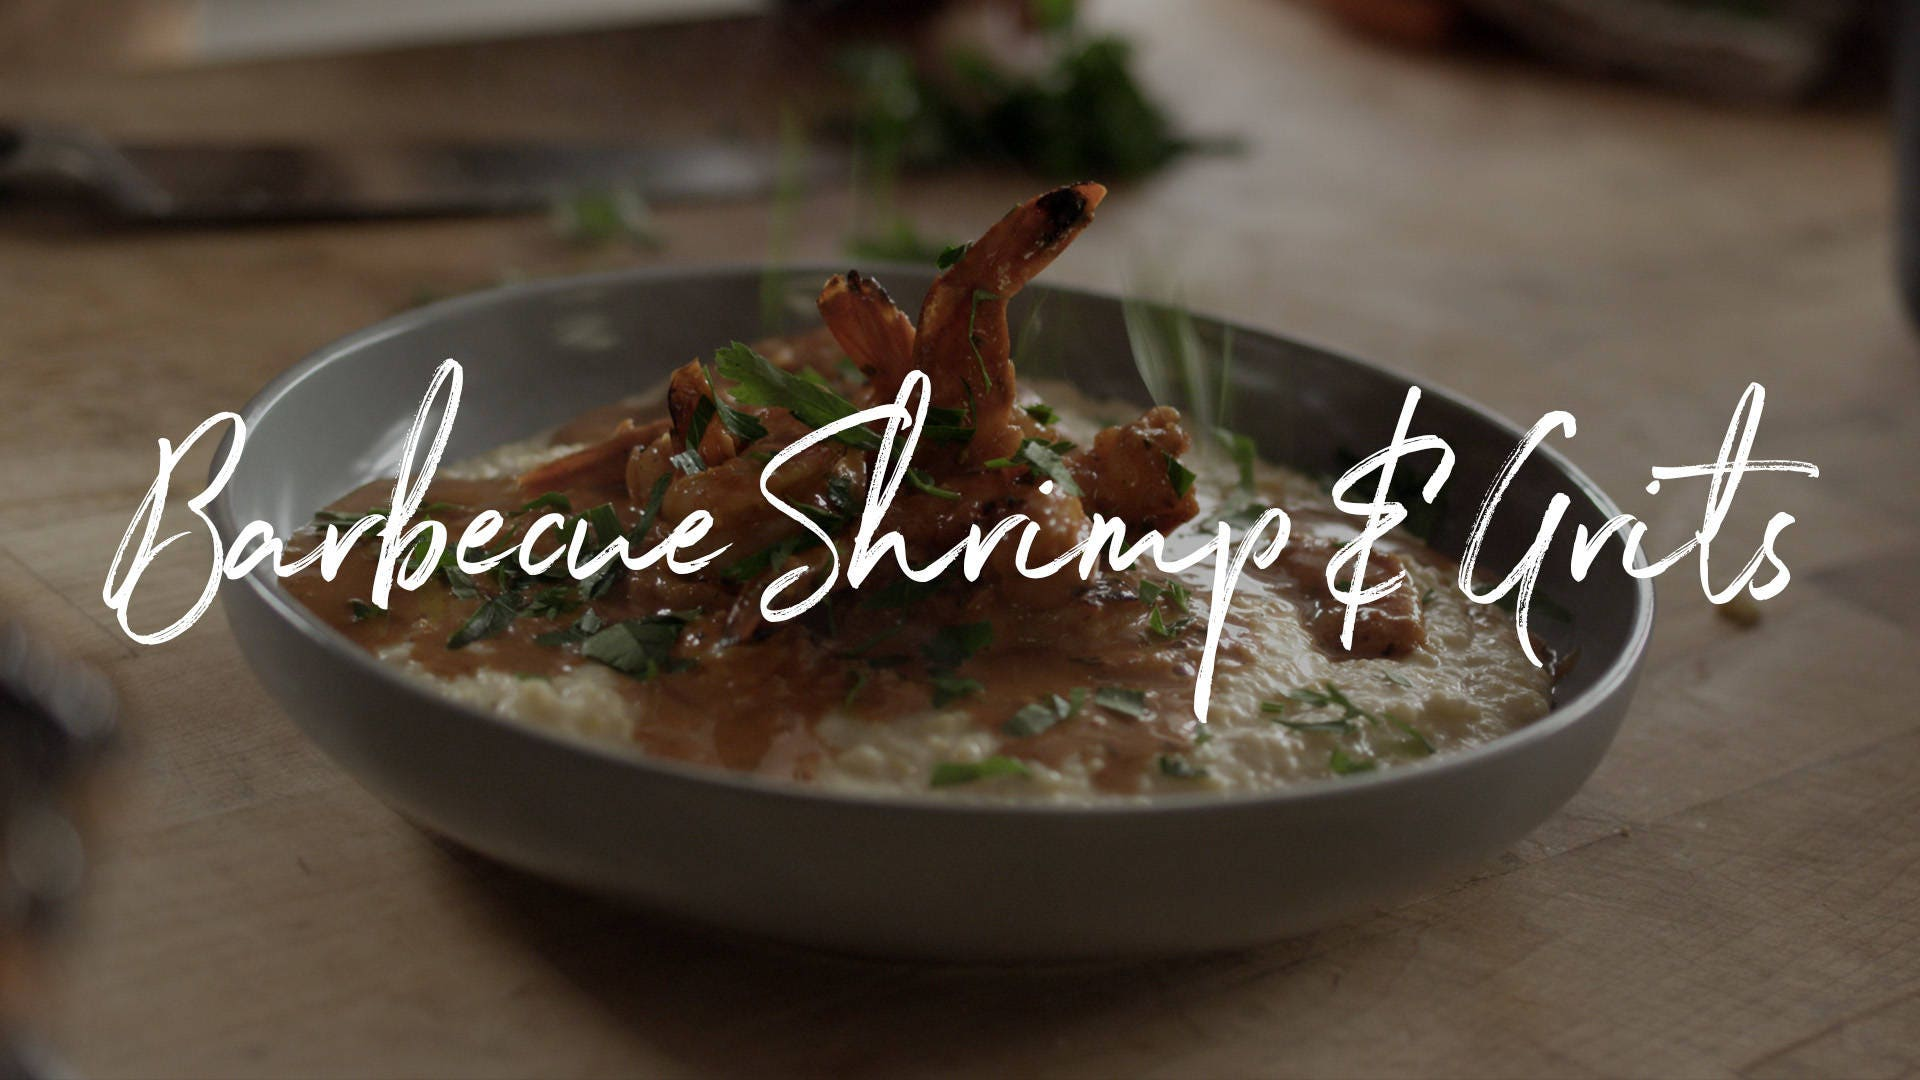 Barbecue Shrimp & Grits Recipe